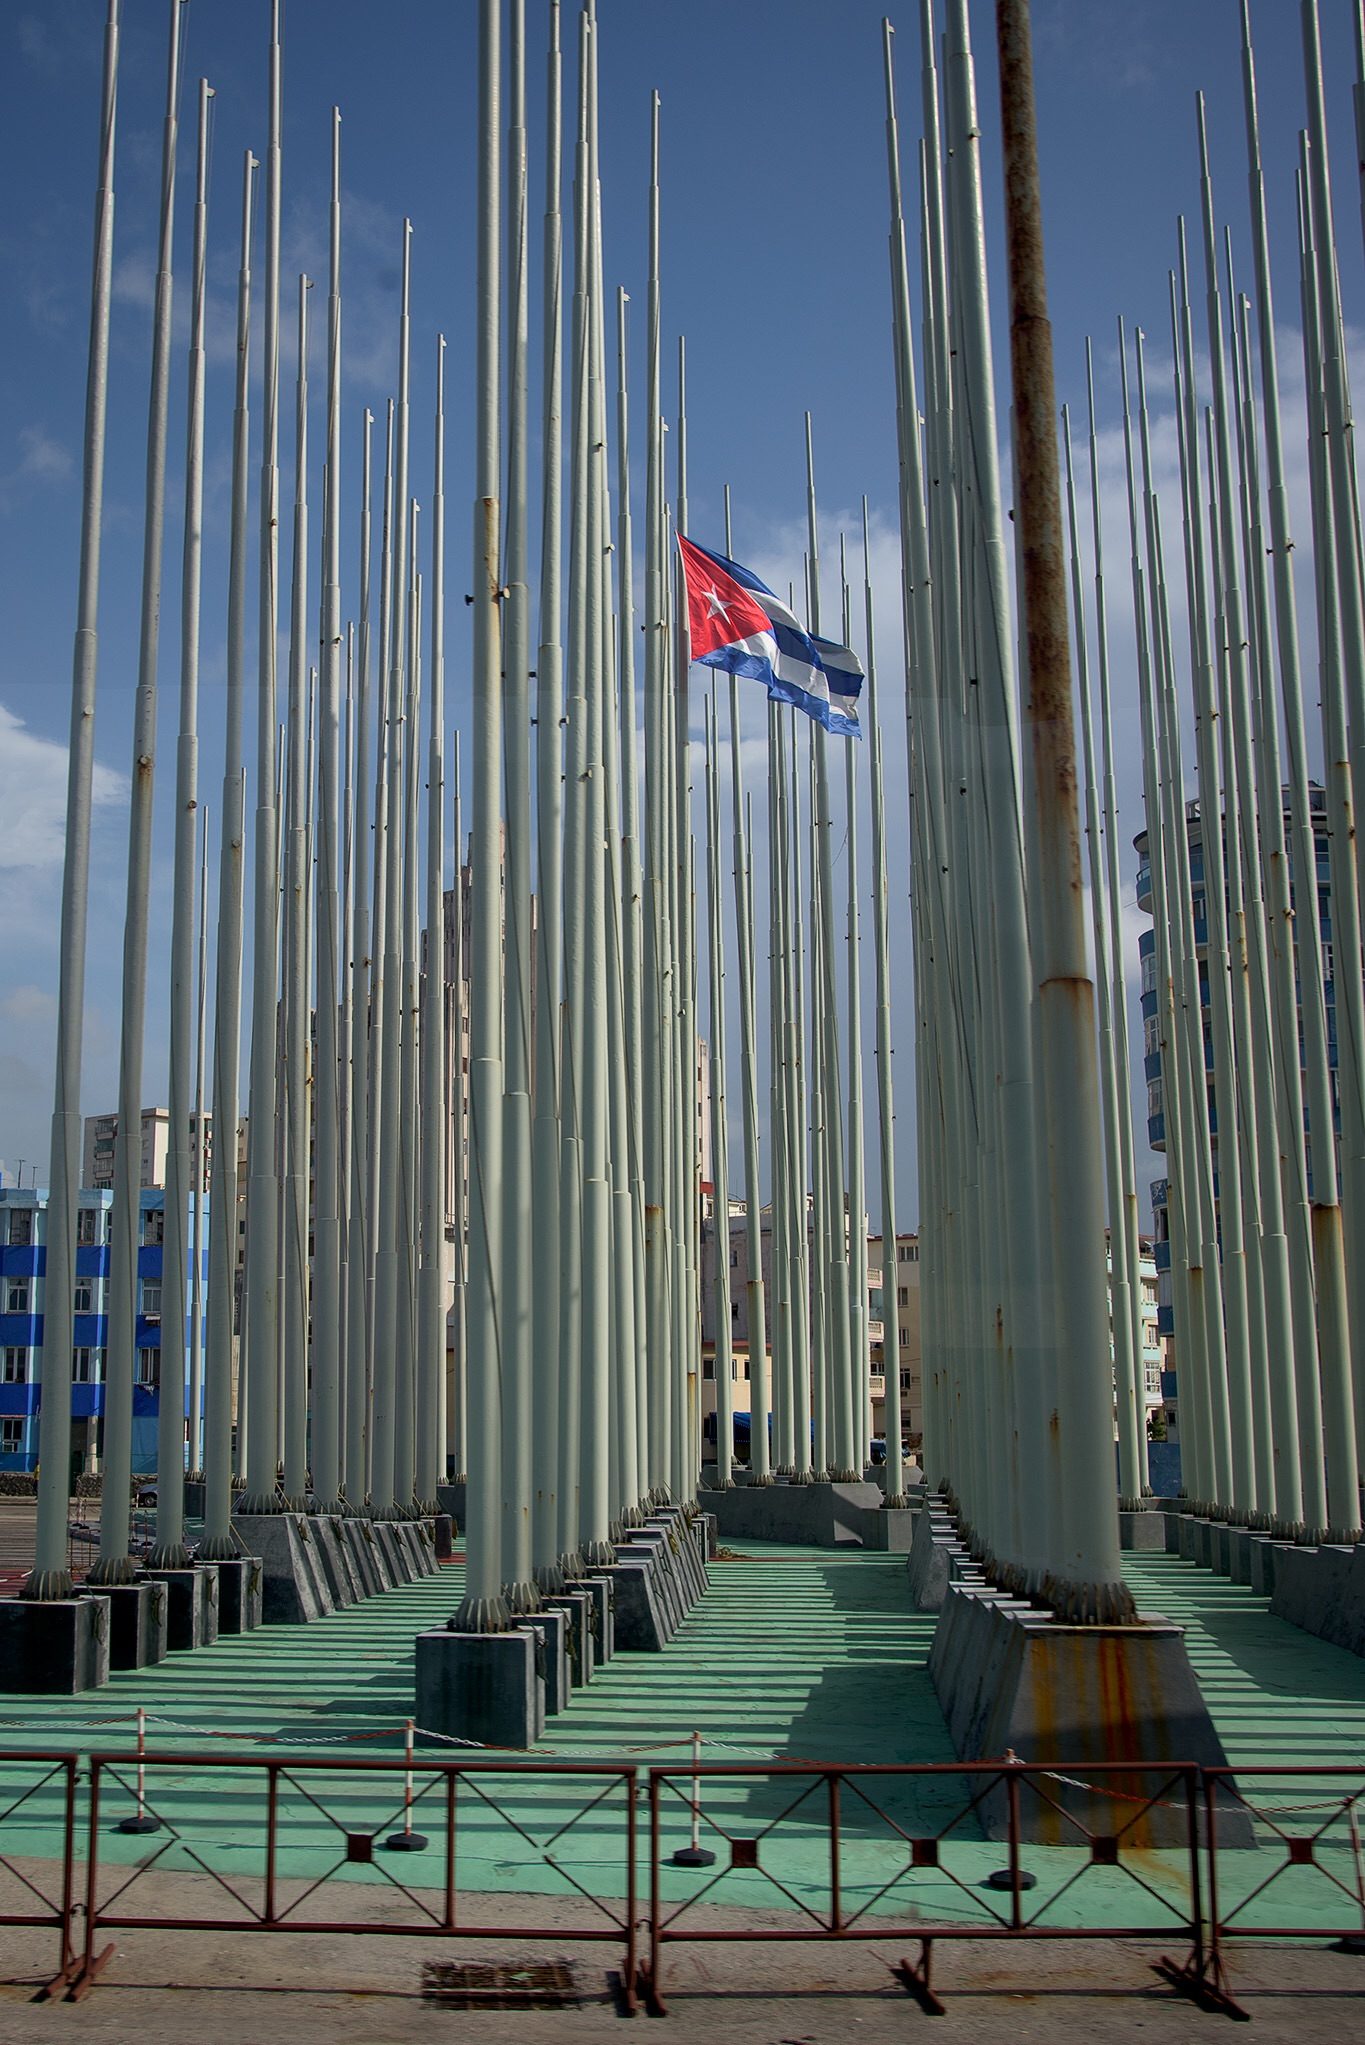 The Cuban flag flies alone in a plaza with dozens of empty flag poles